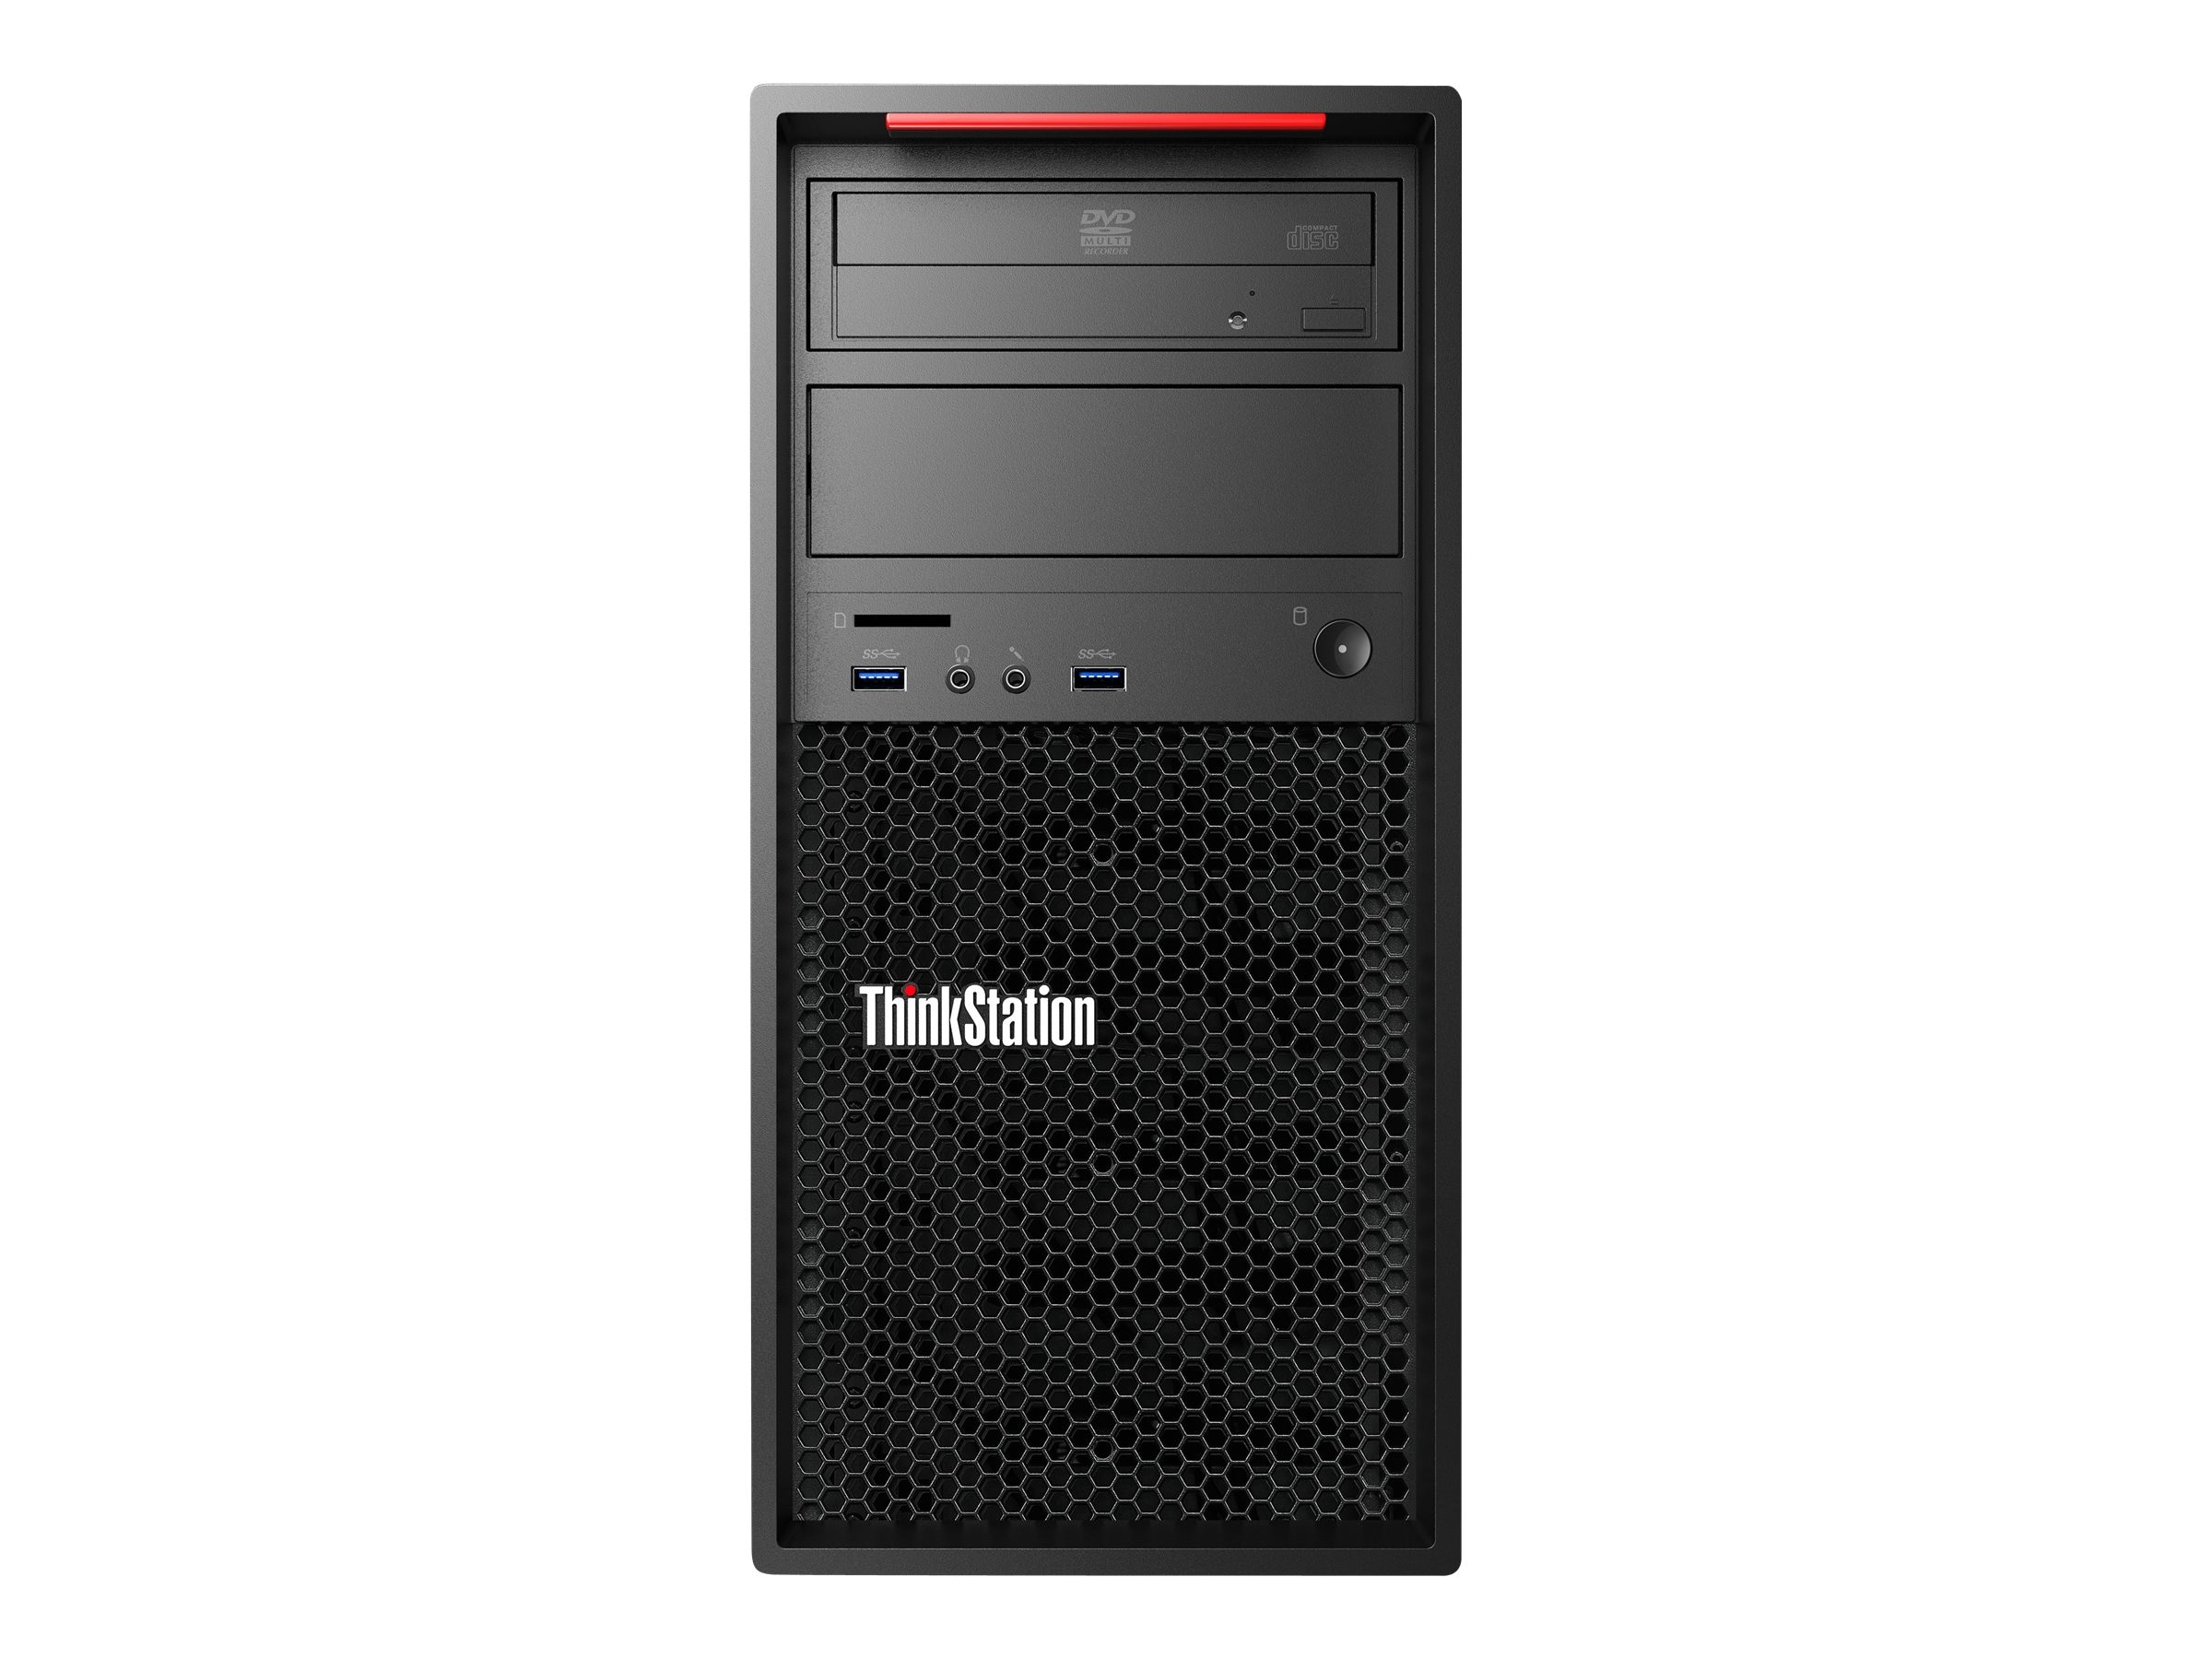 Lenovo ThinkStation P300 3.6GHz Core i3 Microsoft Windows 7 Professional 64-bit Edition   Windows 8.1 Pro, 30AG003GUS, 17402111, Workstations